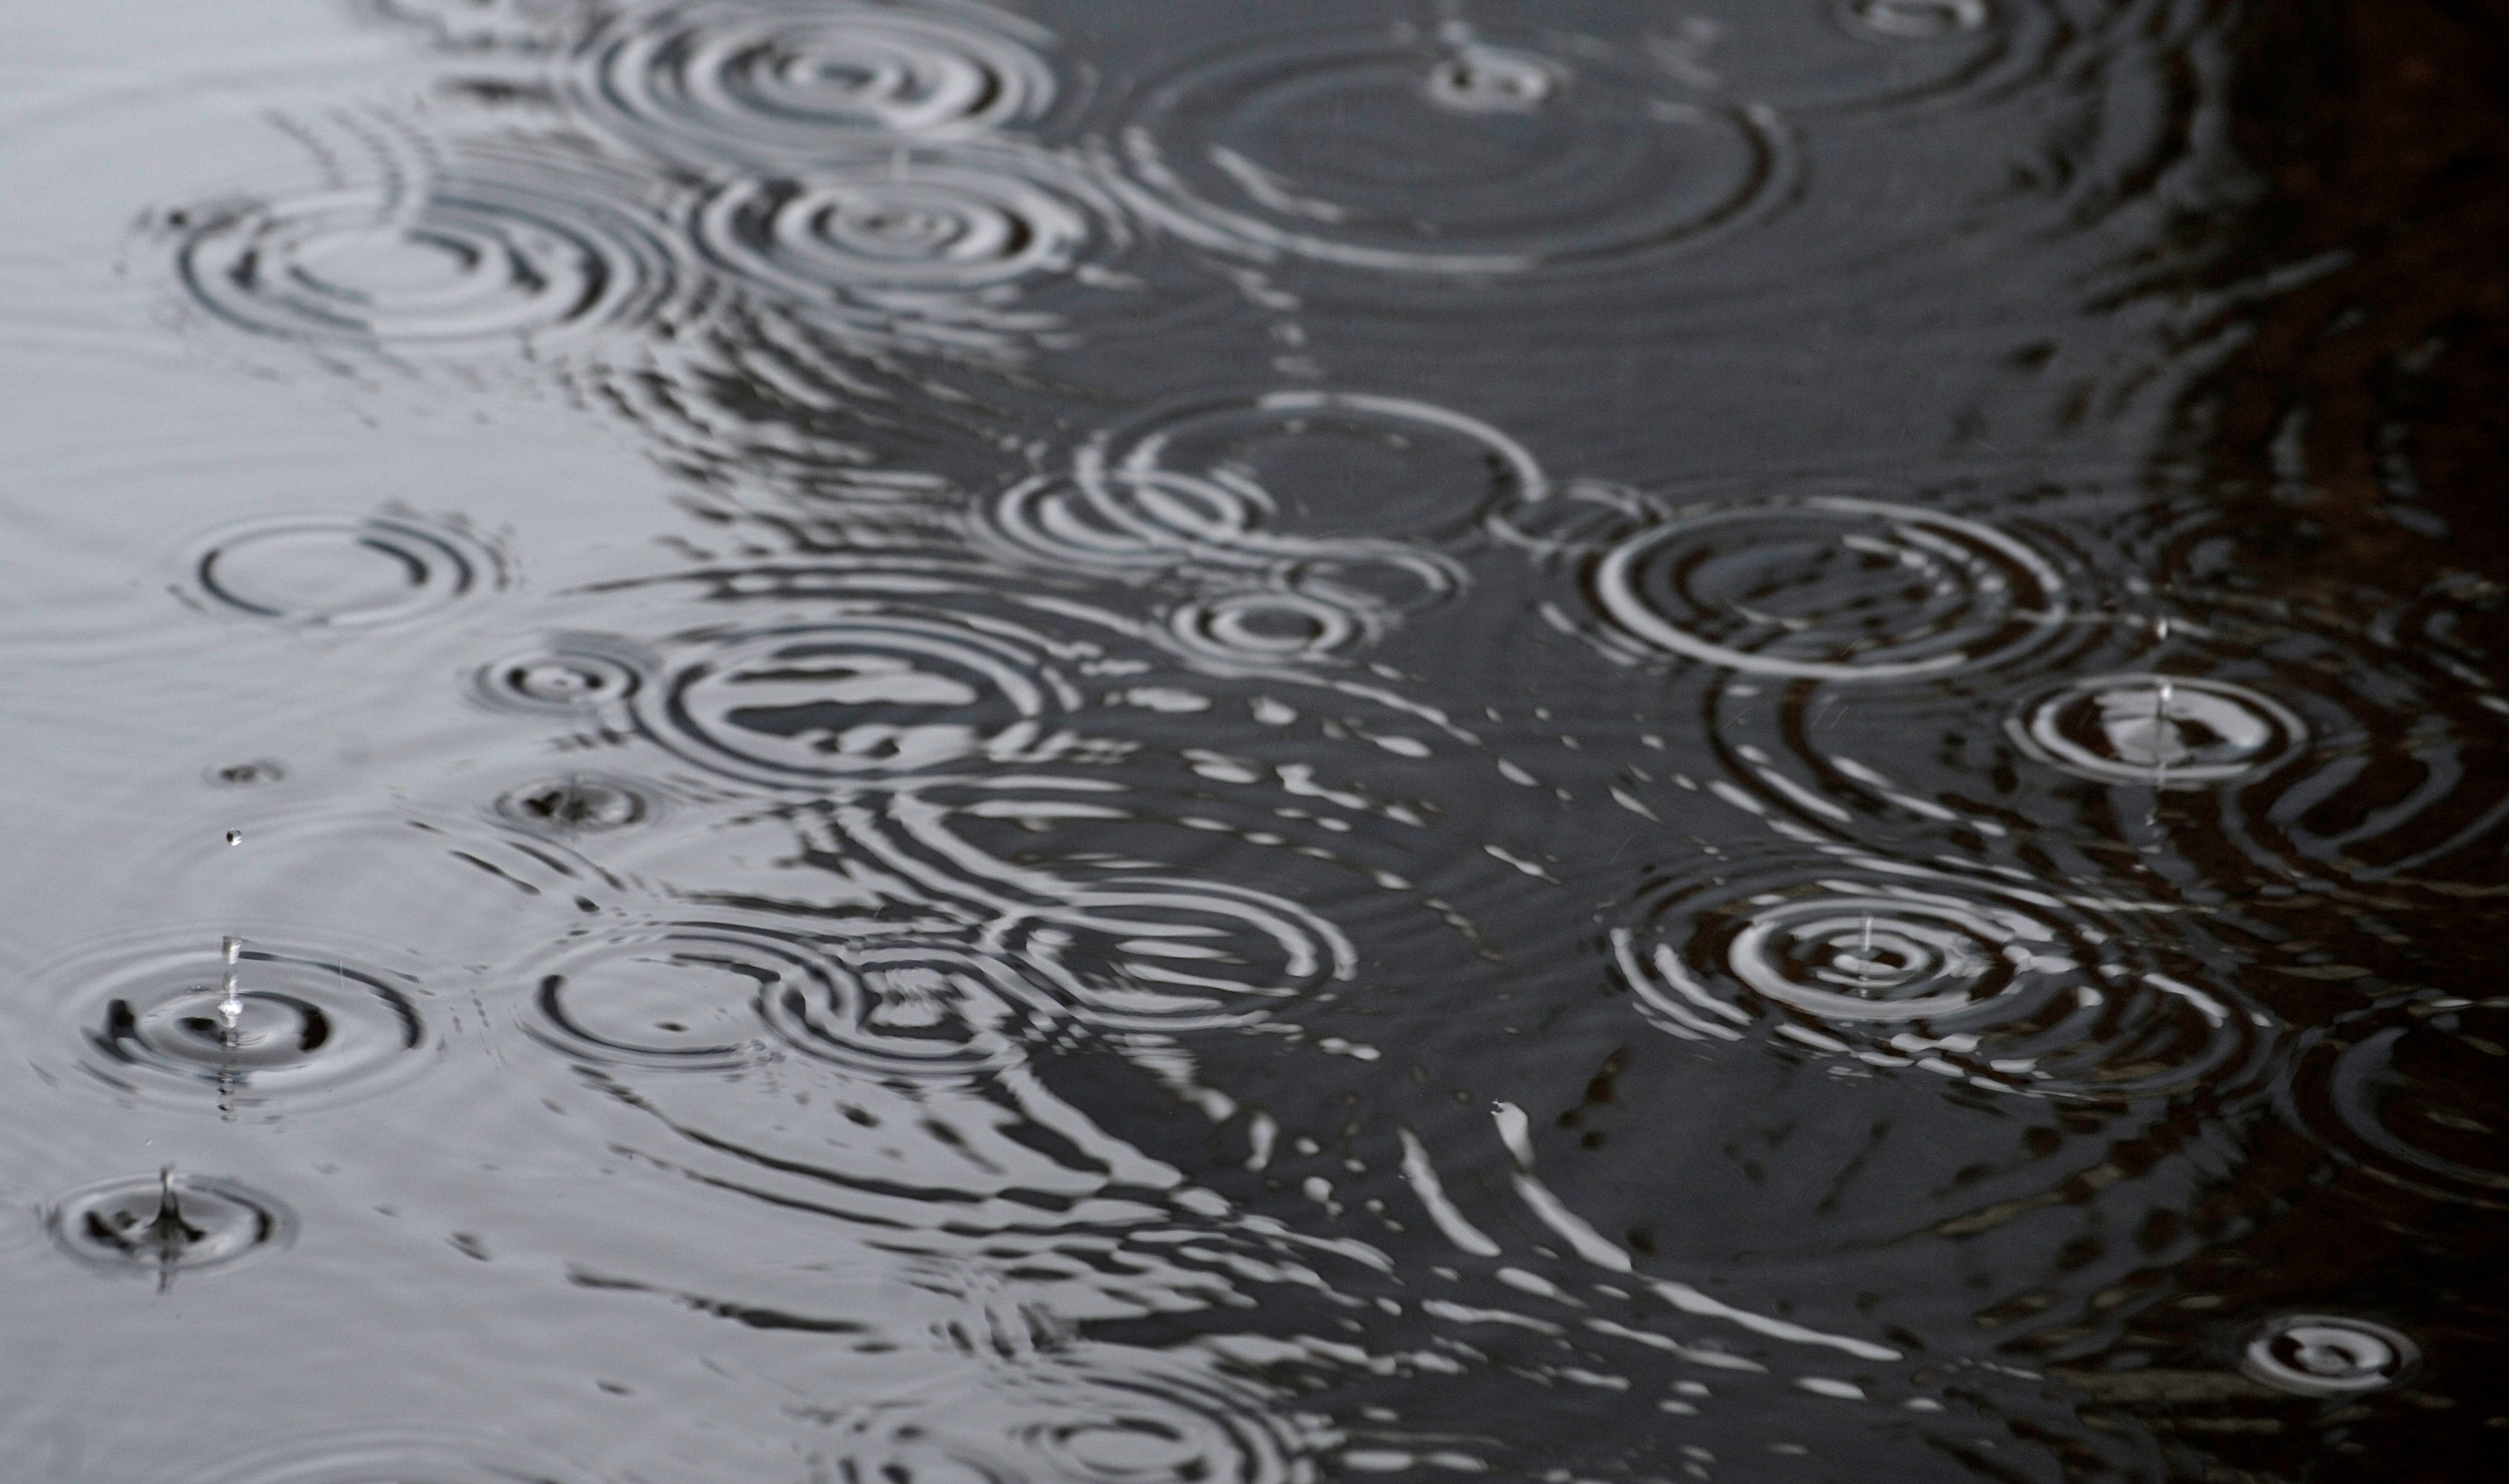 Warmer, wetter than average winter ahead for Michigan, NOAA predicts